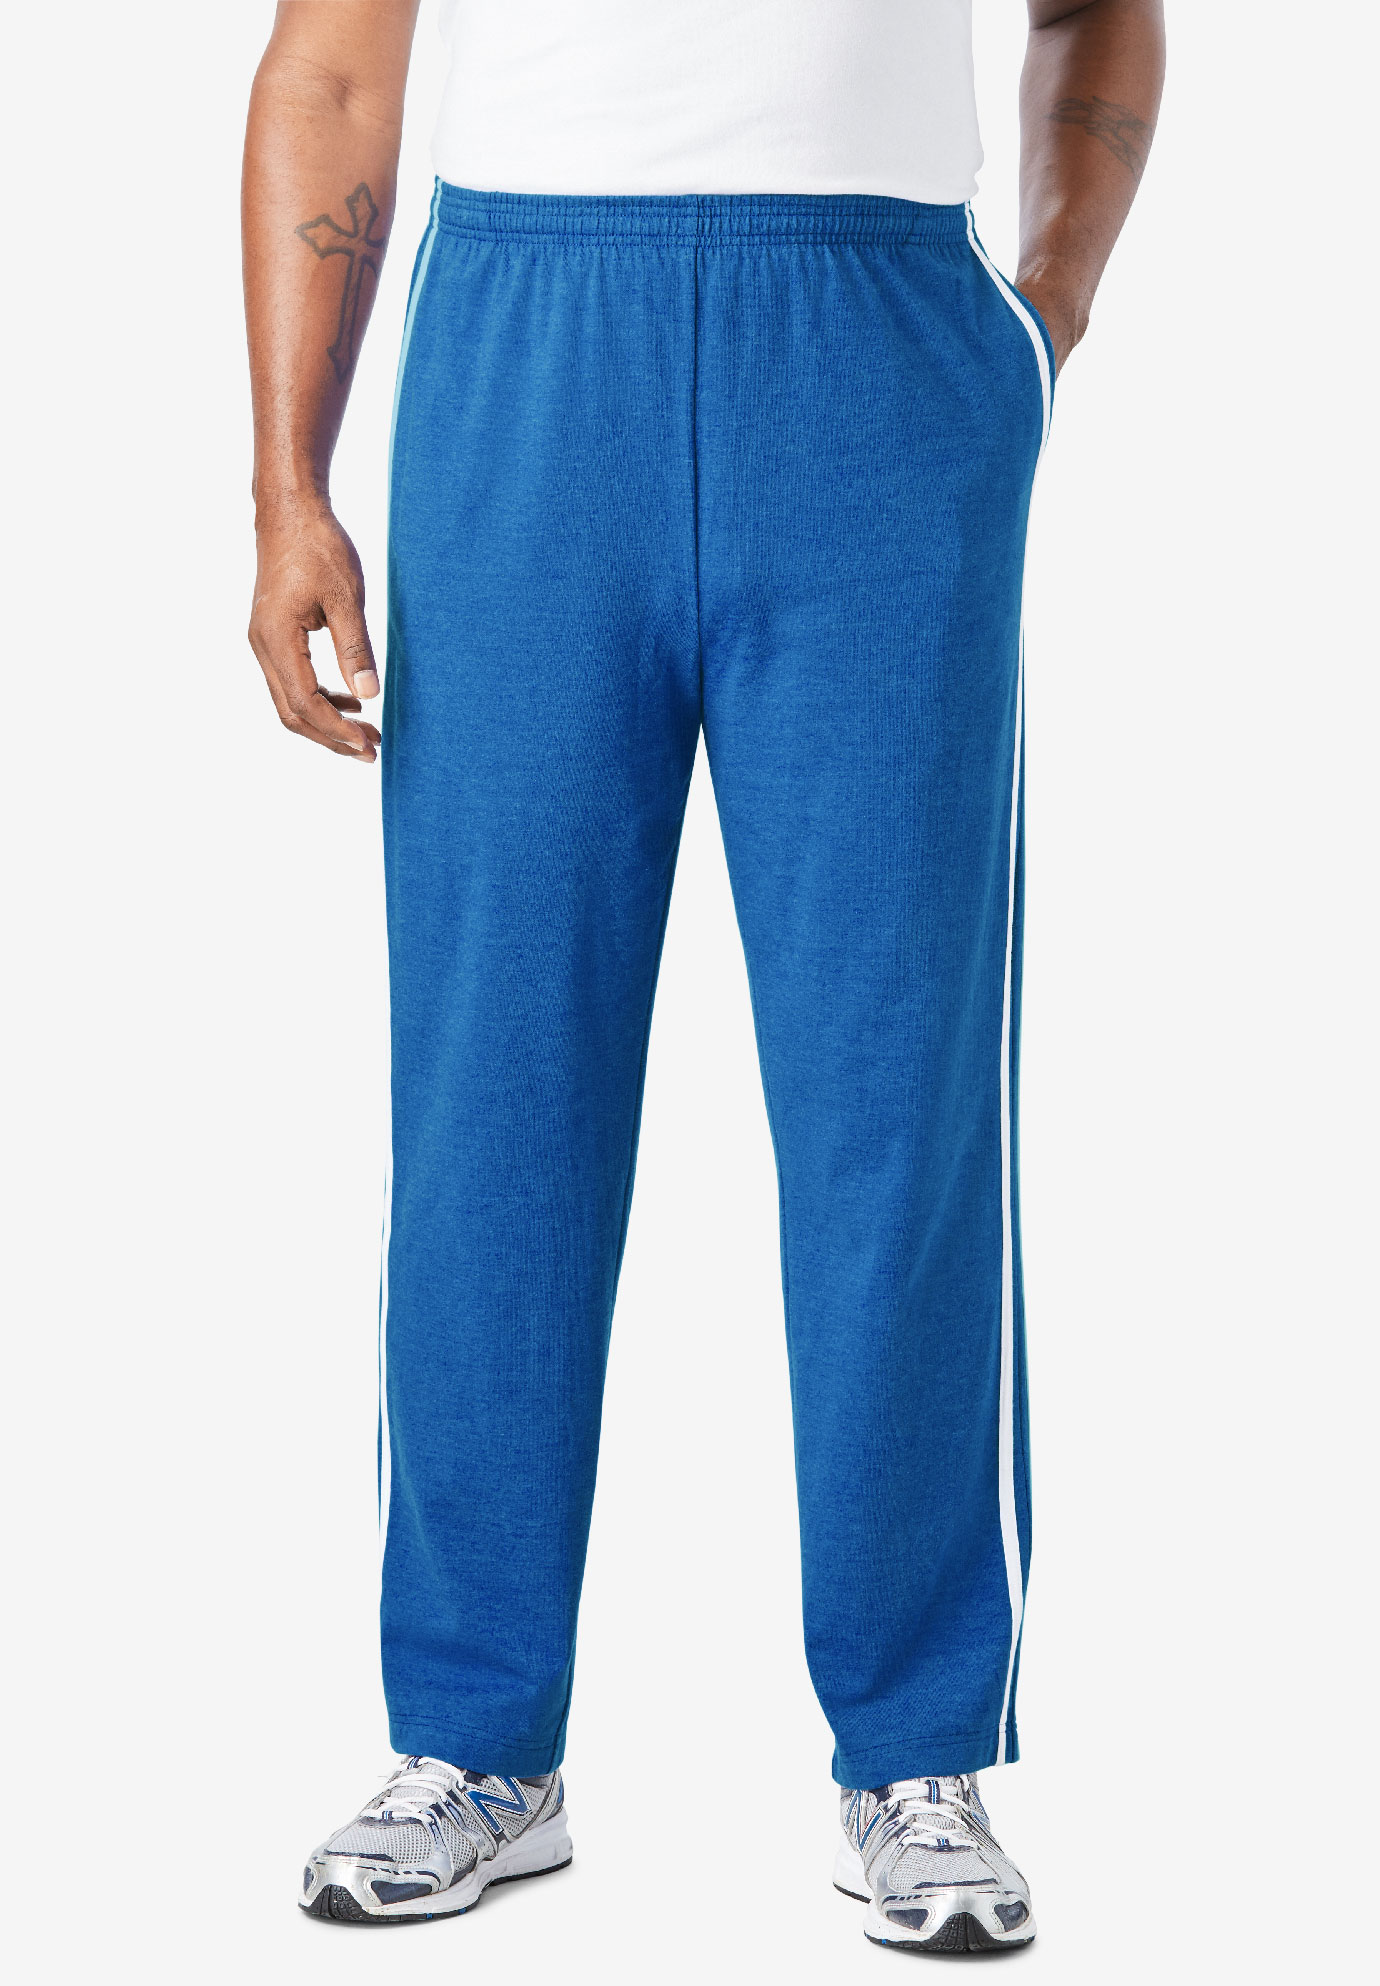 3654a7f8149 Lightweight Sweat Pants with Racing Stripes